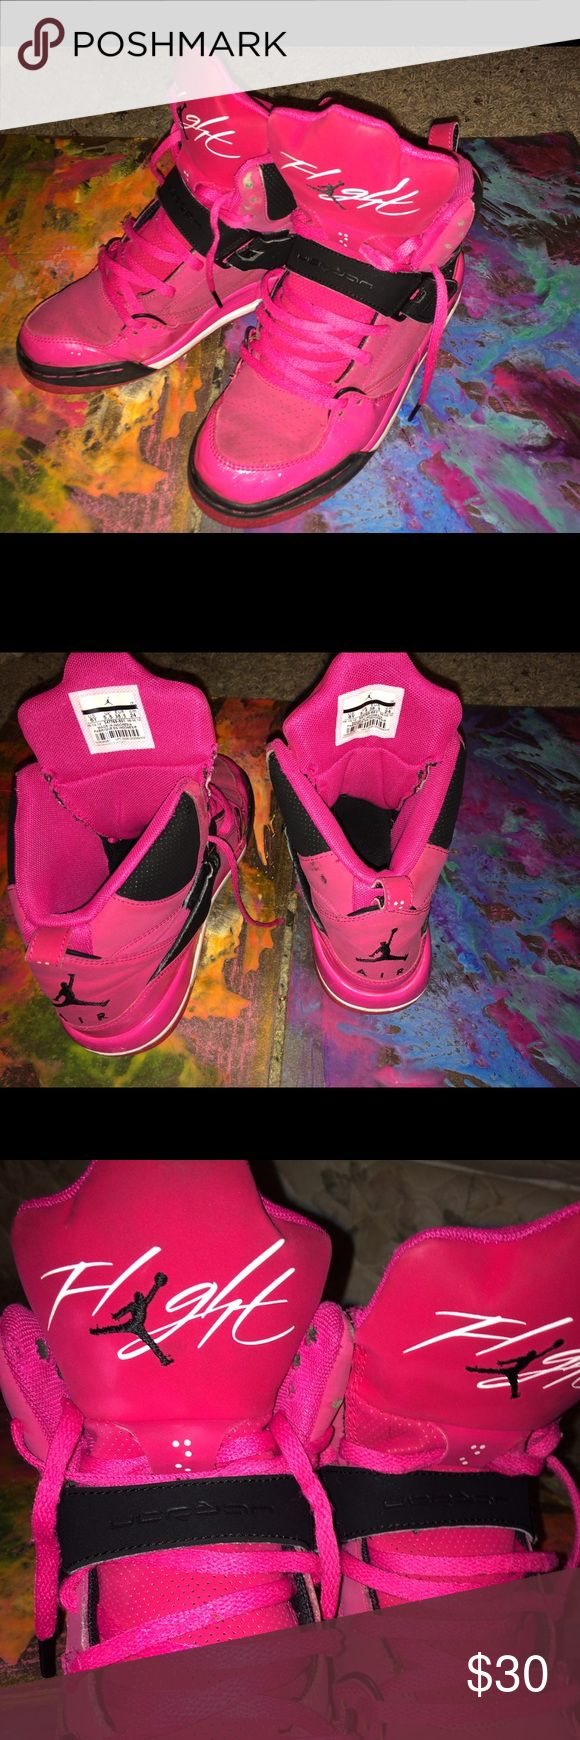 Air Jordan Flight 45 pink high top size 6 Pink, black, and white exterior which have been freshly cleaned but slightly worn (darker discoloration) original lacing as well. Only issue was finding the original price, these bad boys were purchased new from Foot Locker and assumed to be over $100. Jordan Shoes Sneakers